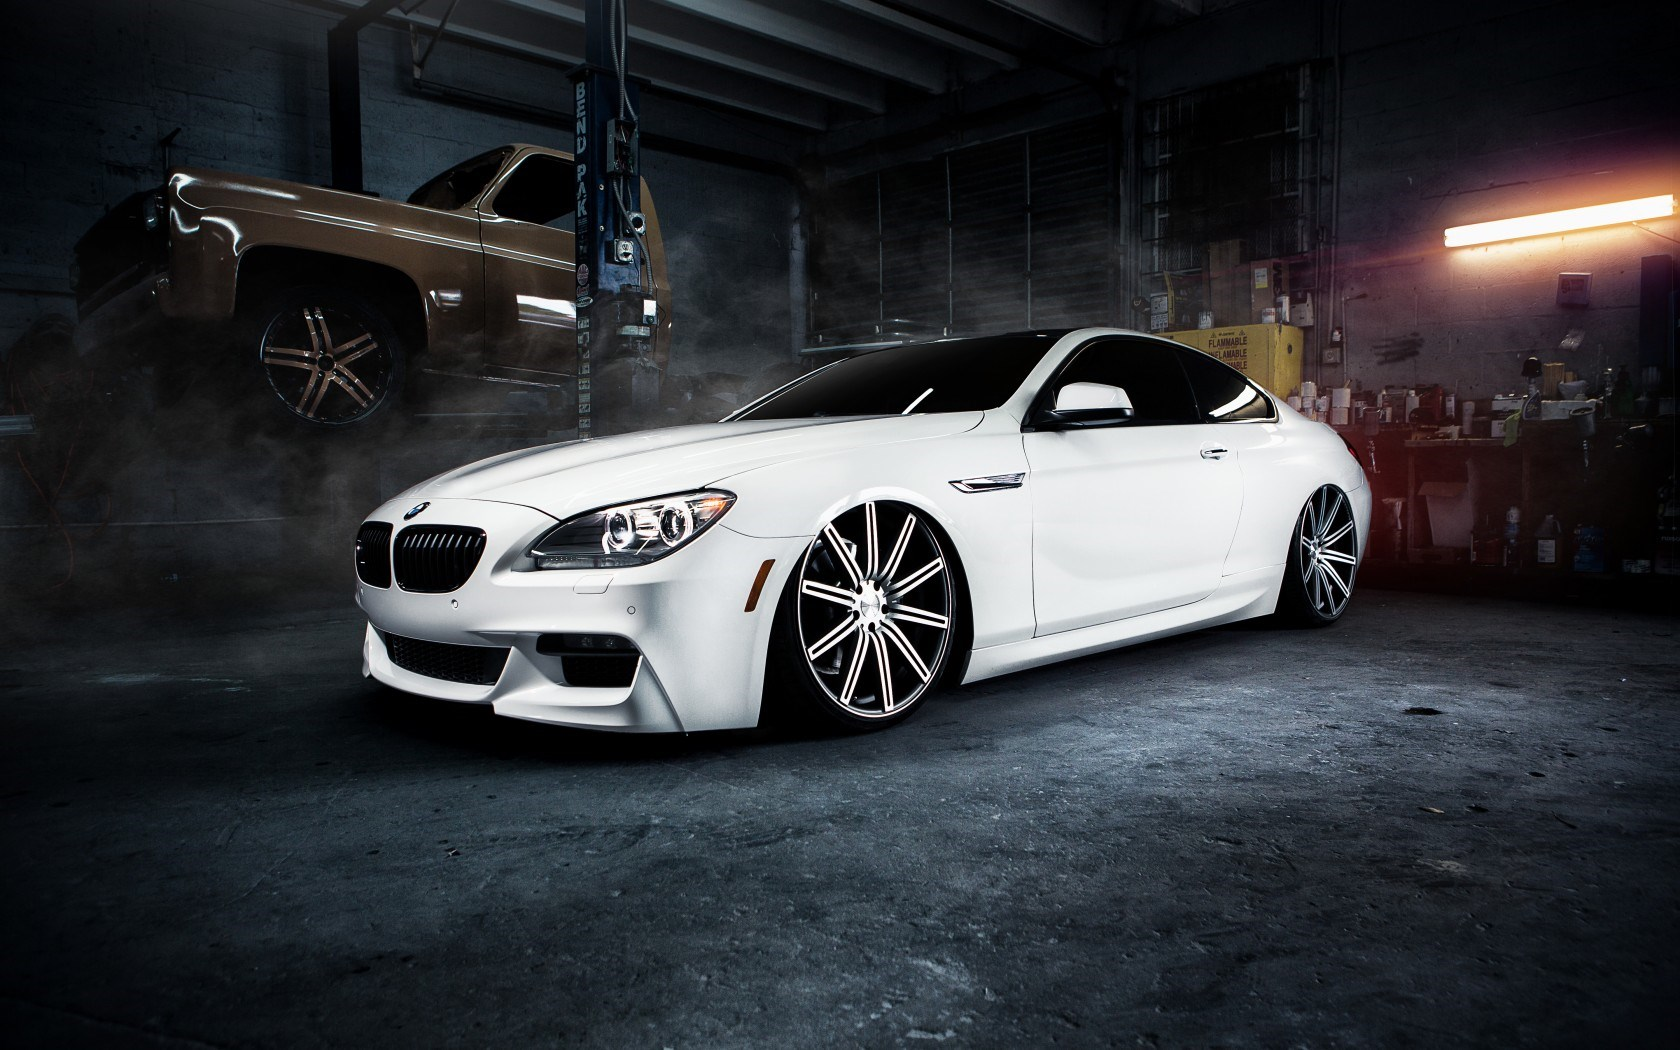 BMW M6 White Car Garage